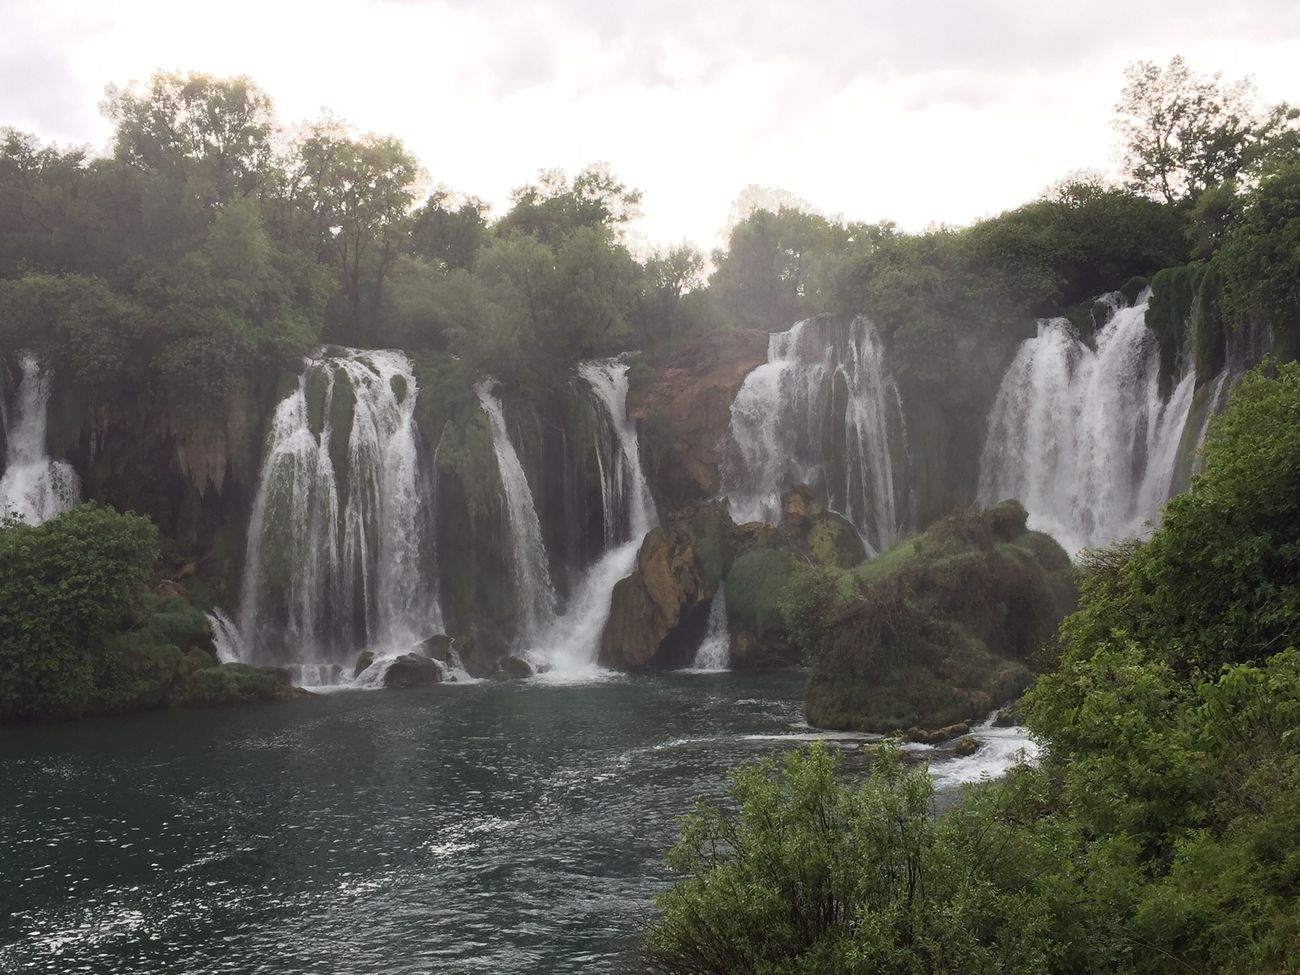 The sun started to come out in Kravica! Waterfall Kravica, Bosnia & Herzegovina